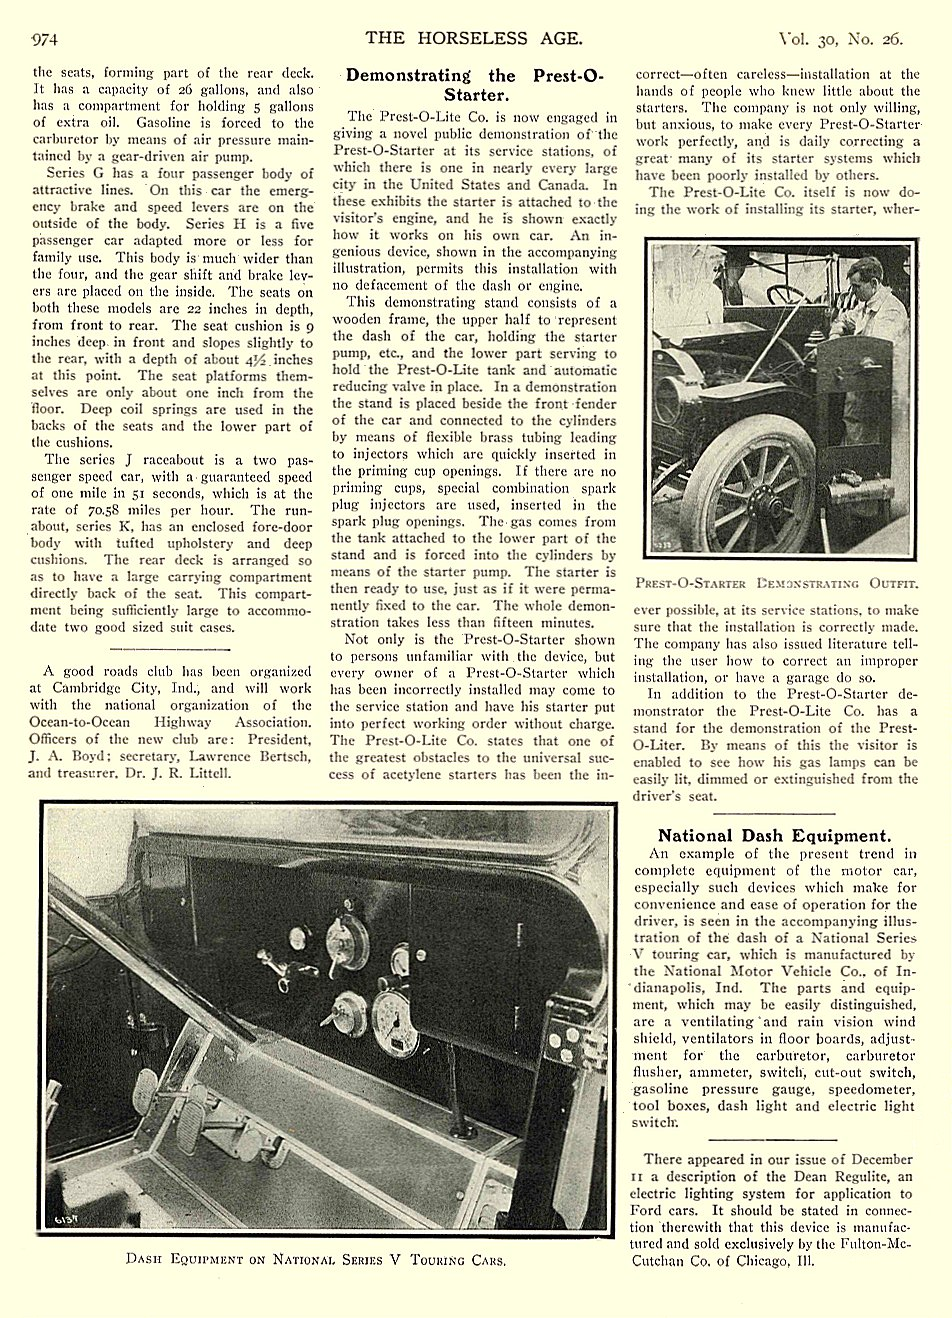 1912 12 25 NATIONAL Article National Dash Equipment THE HORSELESS AGE December 25, 1912 8.5″x11.5″ University of Minnesota Library page 974